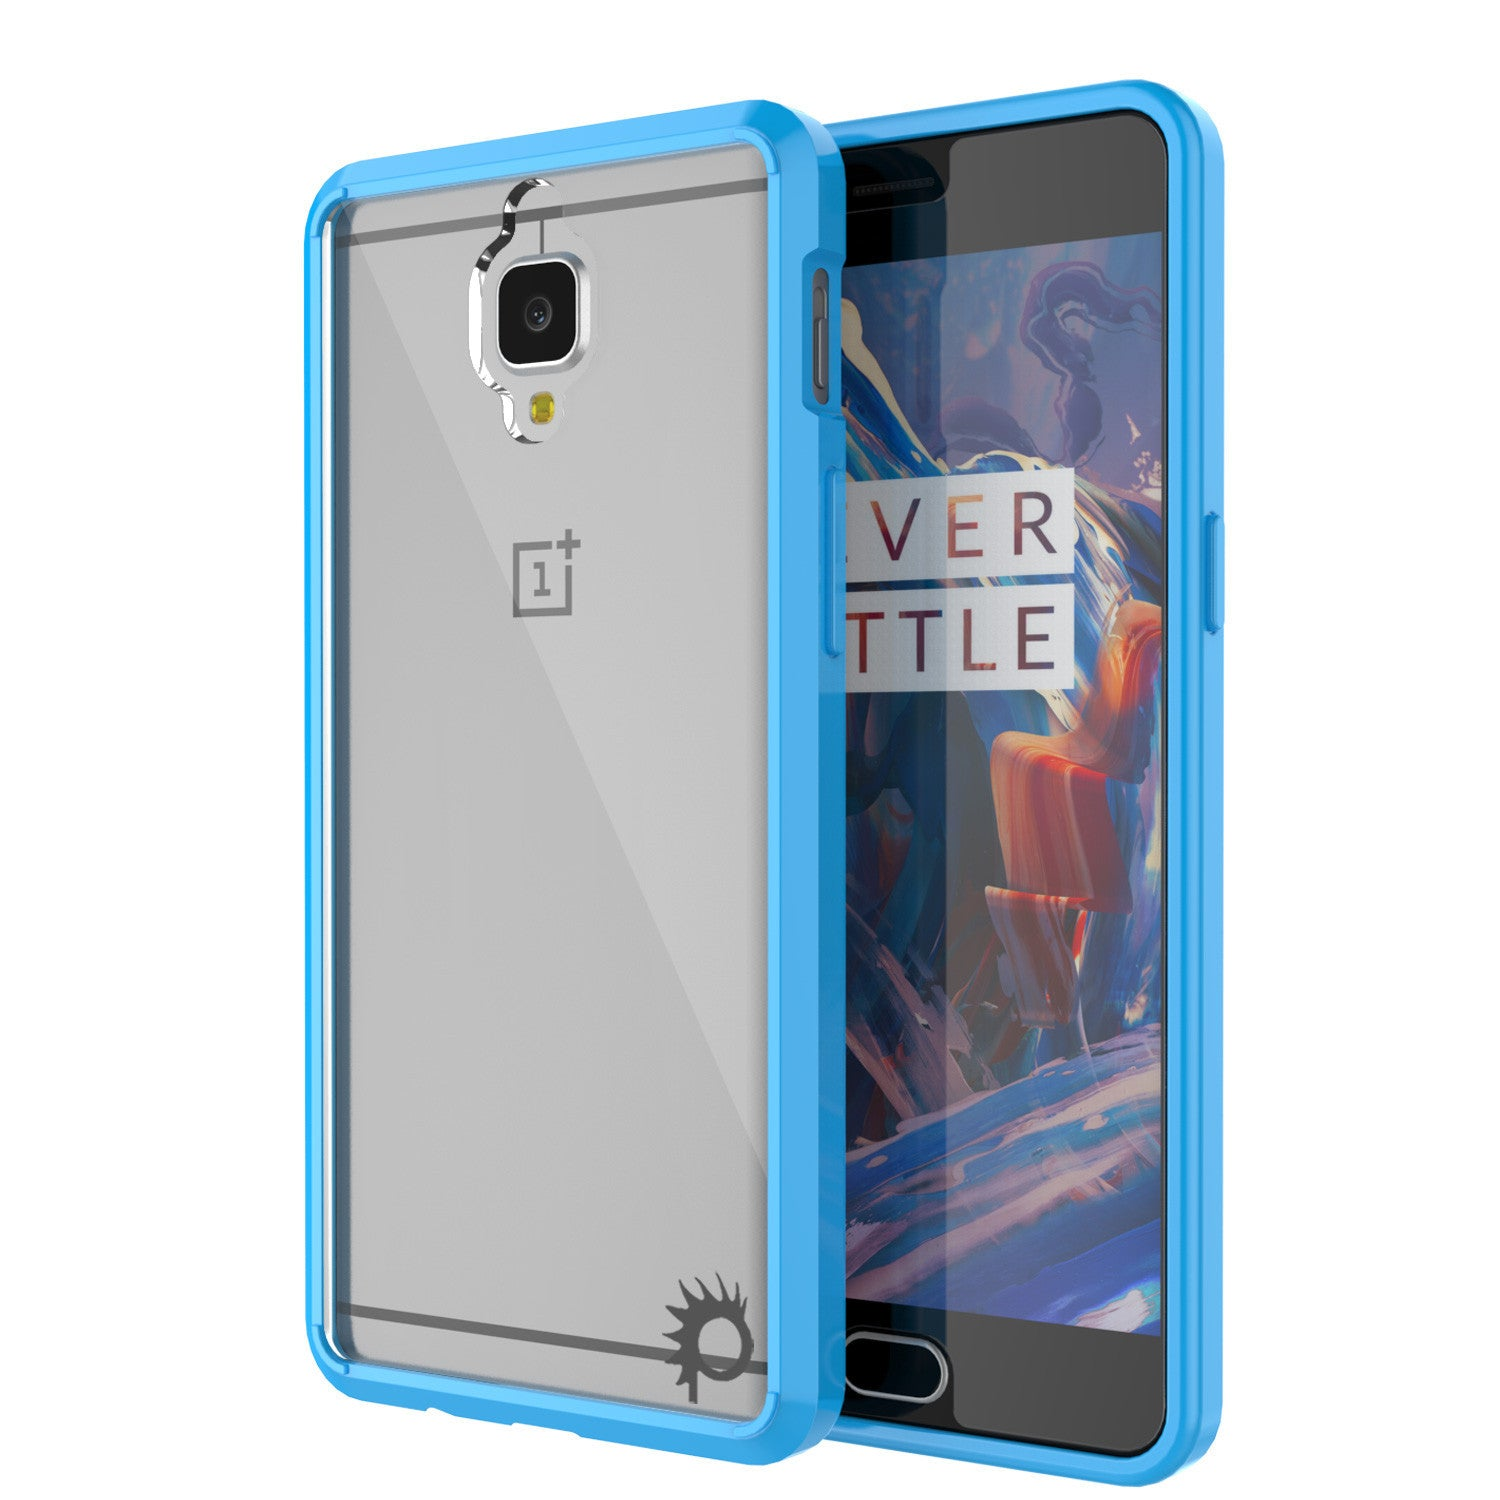 OnePlus 3 Case Punkcase® LUCID 2.0 Light Blue Series w/ SHIELD GLASS Lifetime Warranty Exchange